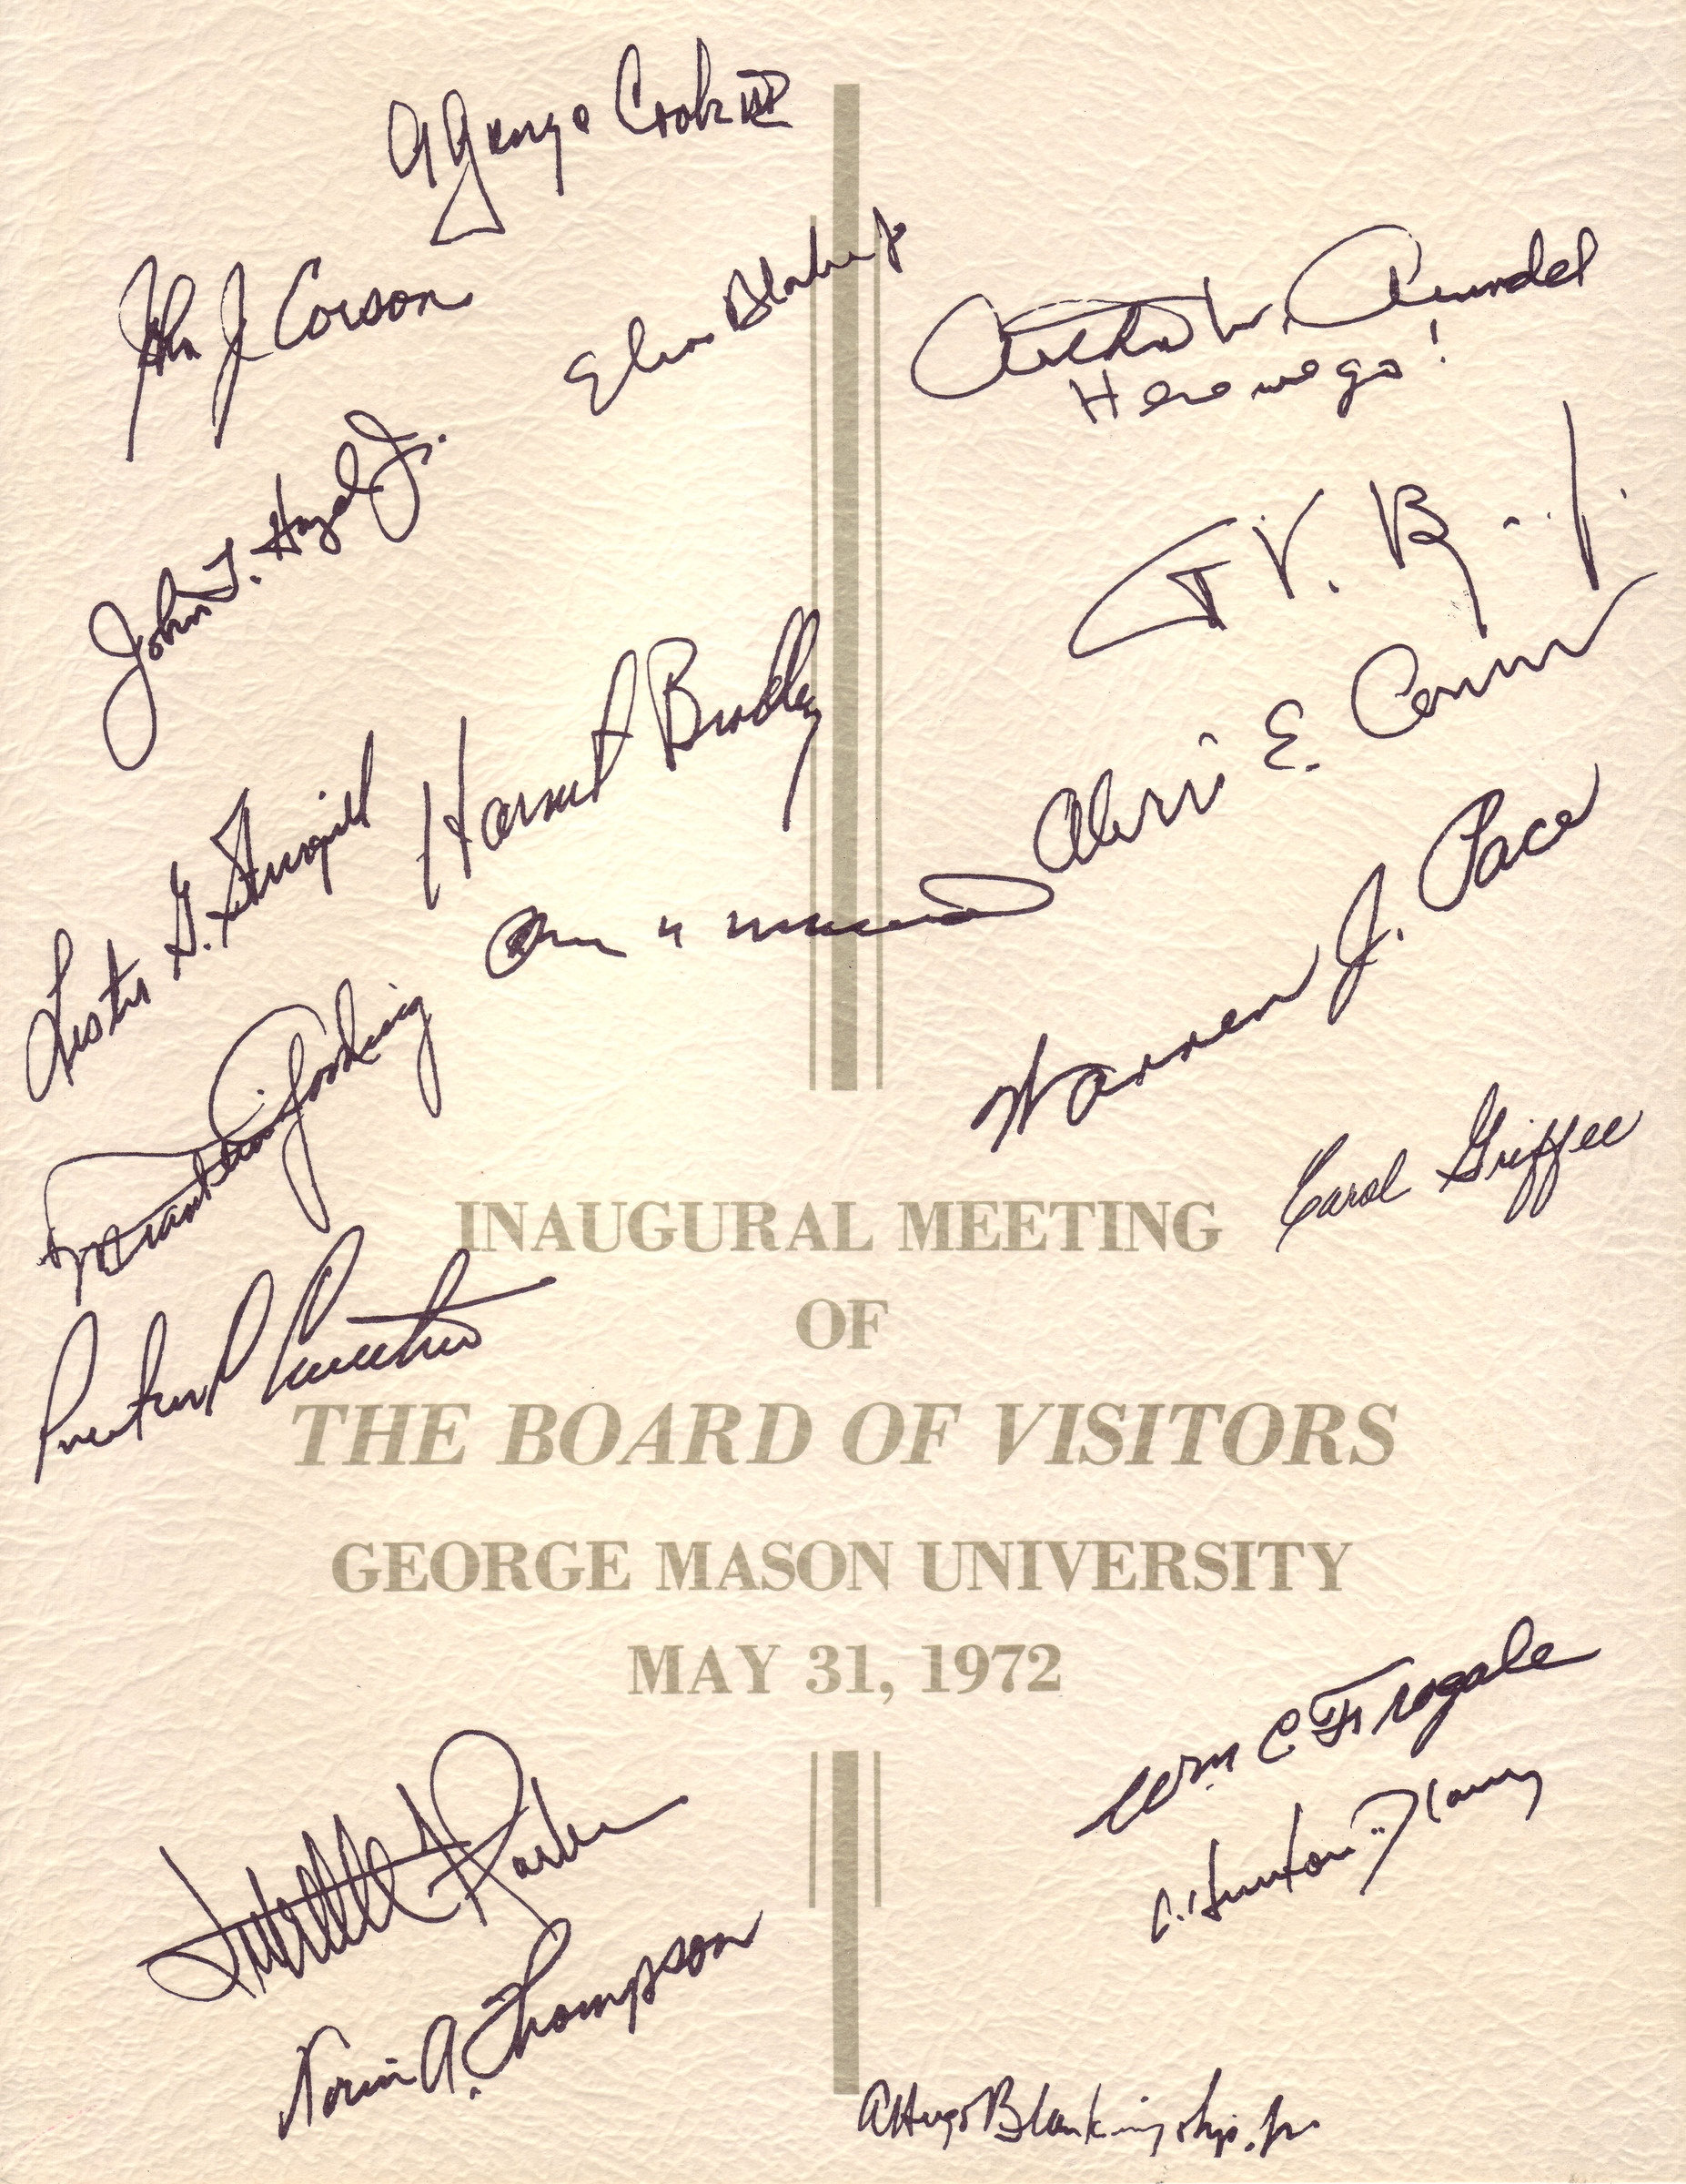 Inaugural meeting of The Board of Visitors, George Mason University, May 31, 1972, autographed card